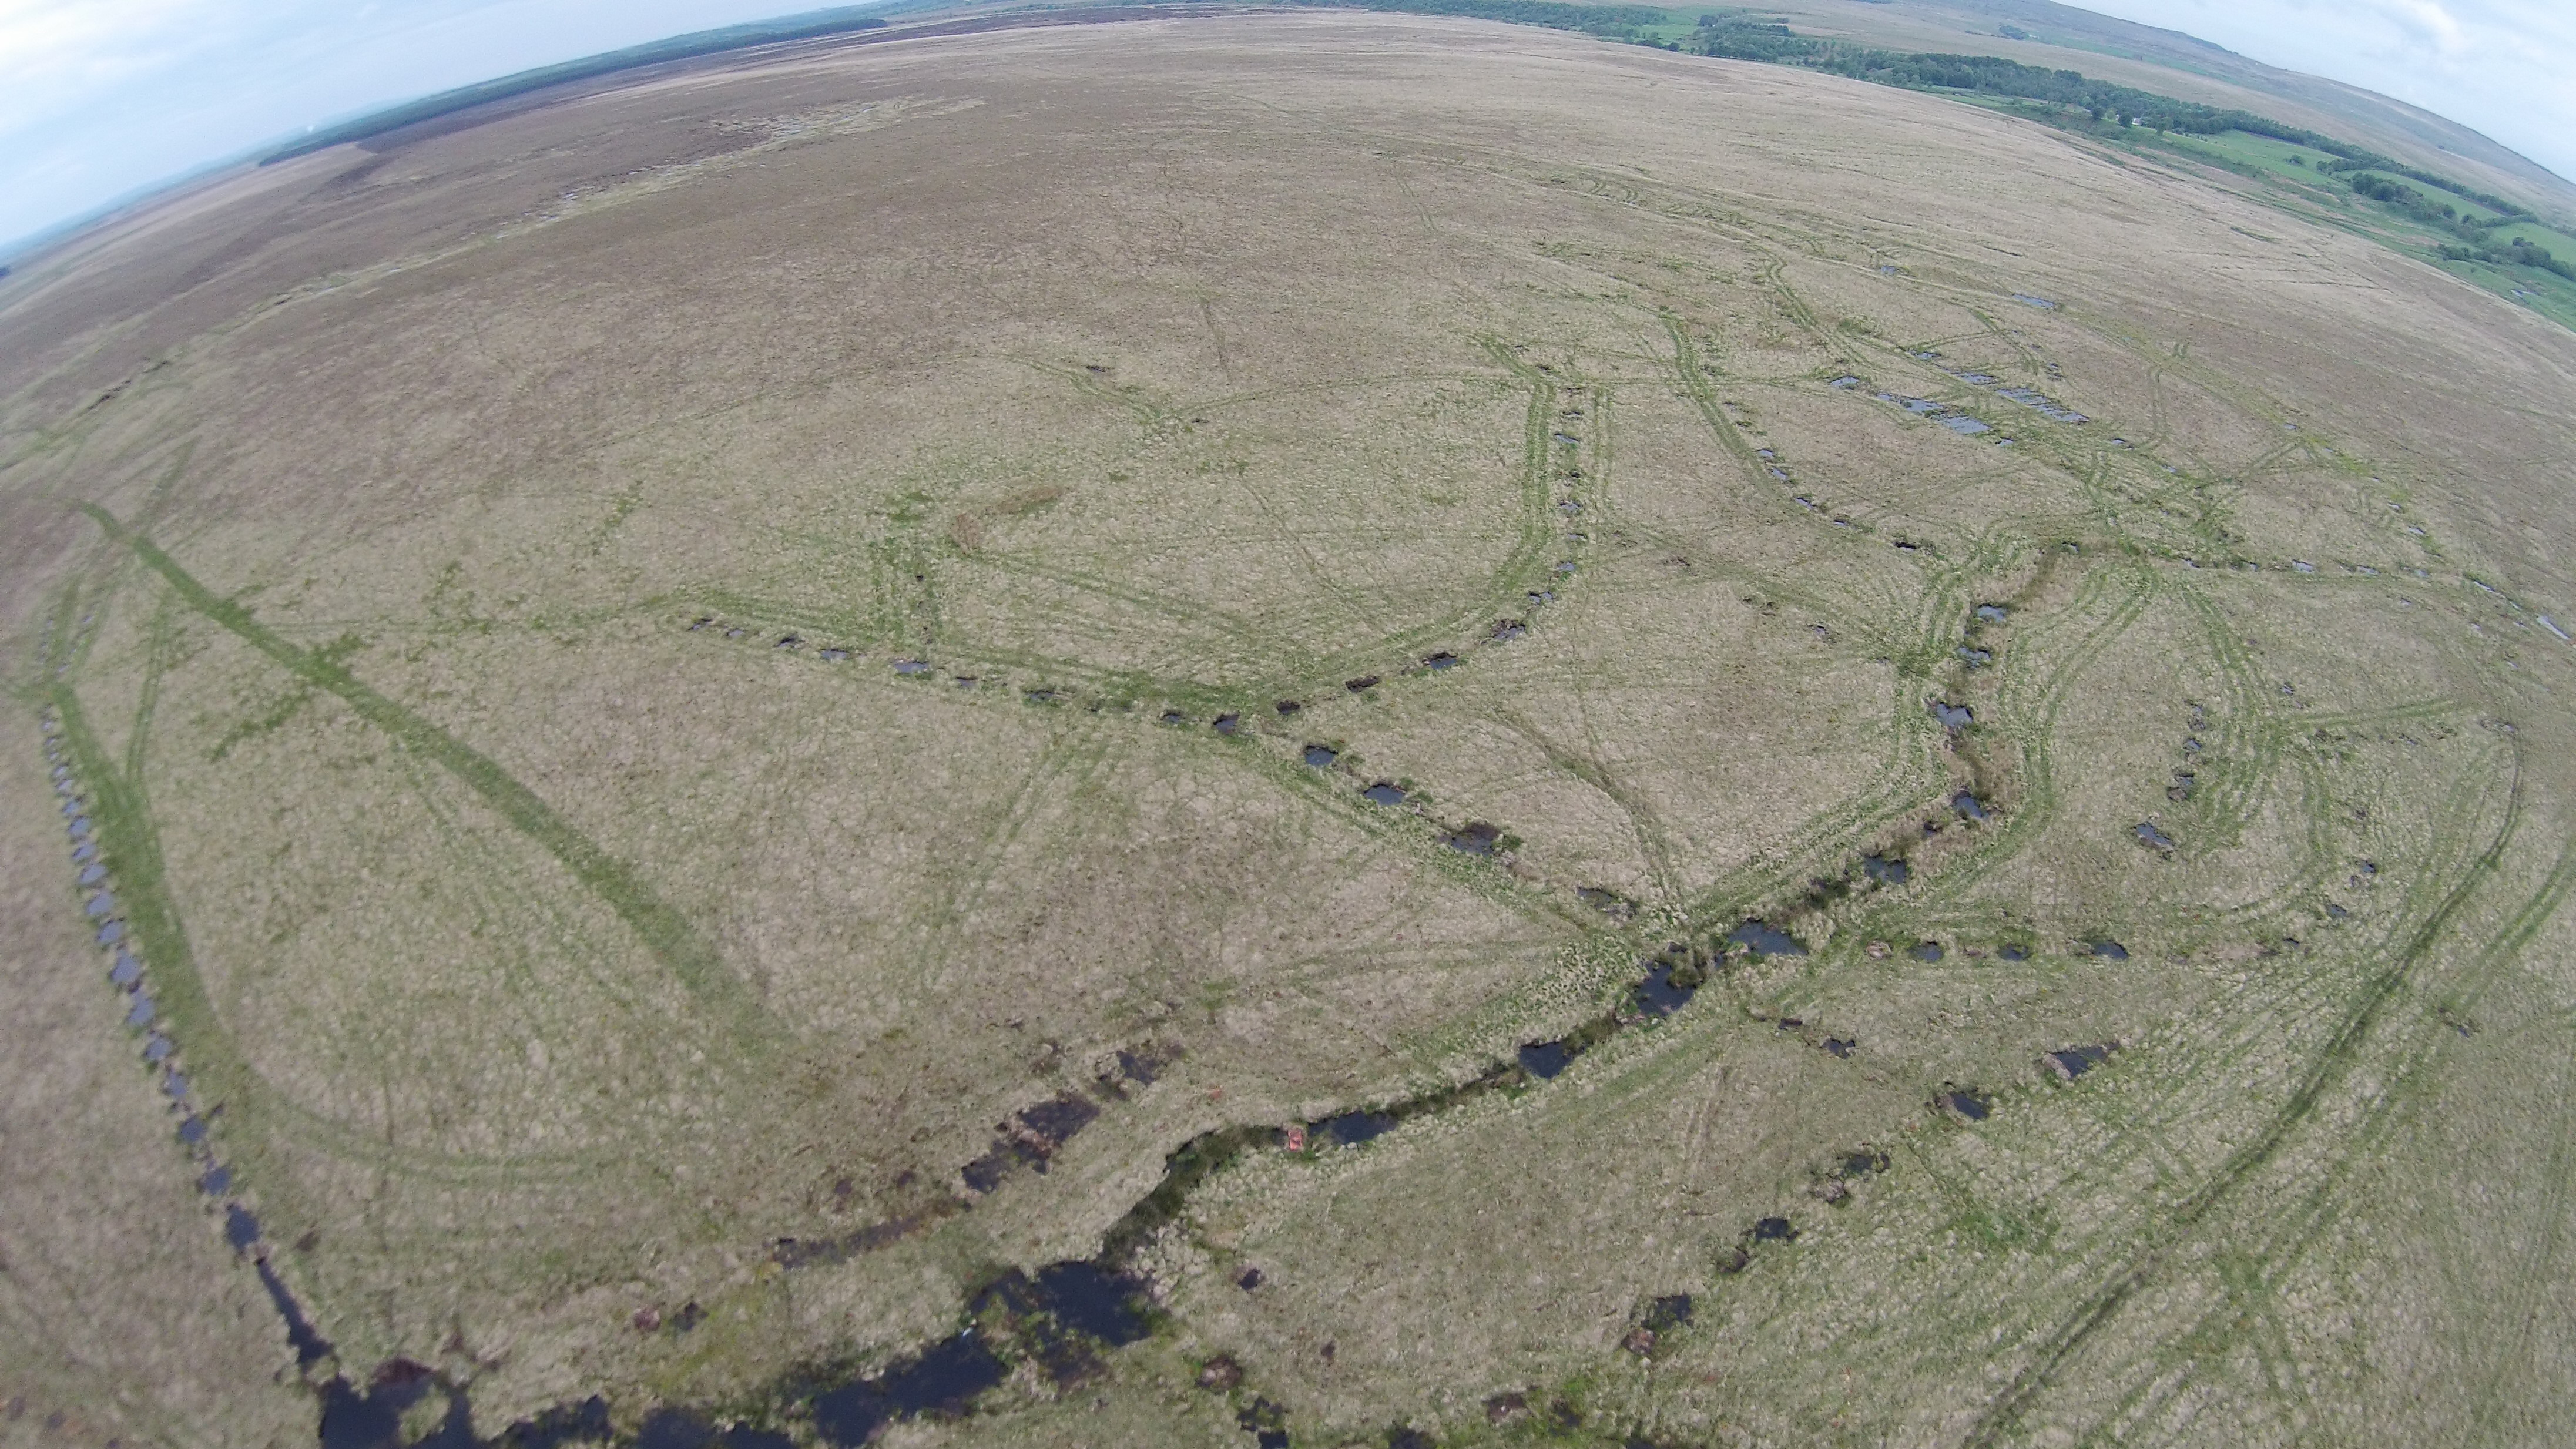 Aerial photograph showing drainage ditches across RSPB Airds Moss. These ditches were put in at the end of the 20th century to drain the site for farming which are still having an affect on the bog's hydrology to this day. The pools visible have been created from a series of peat dams that have been put in place to raise the water level and prevent the water running off site. Peat dams are put in place at roughly 20 meter intervals.